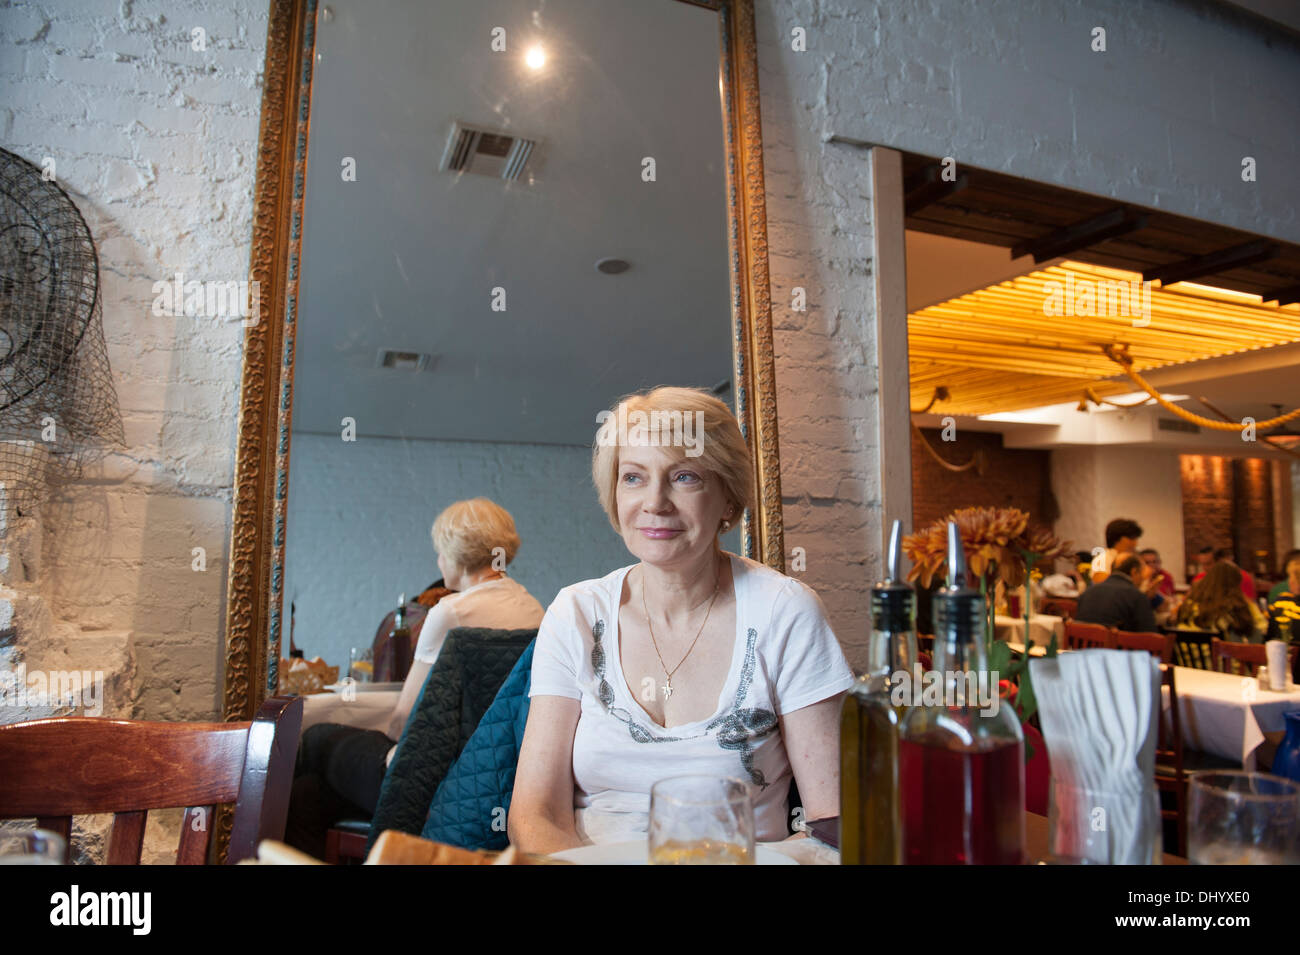 A Middle Aged Woman In A Greek Restaurant In Astoria Queens